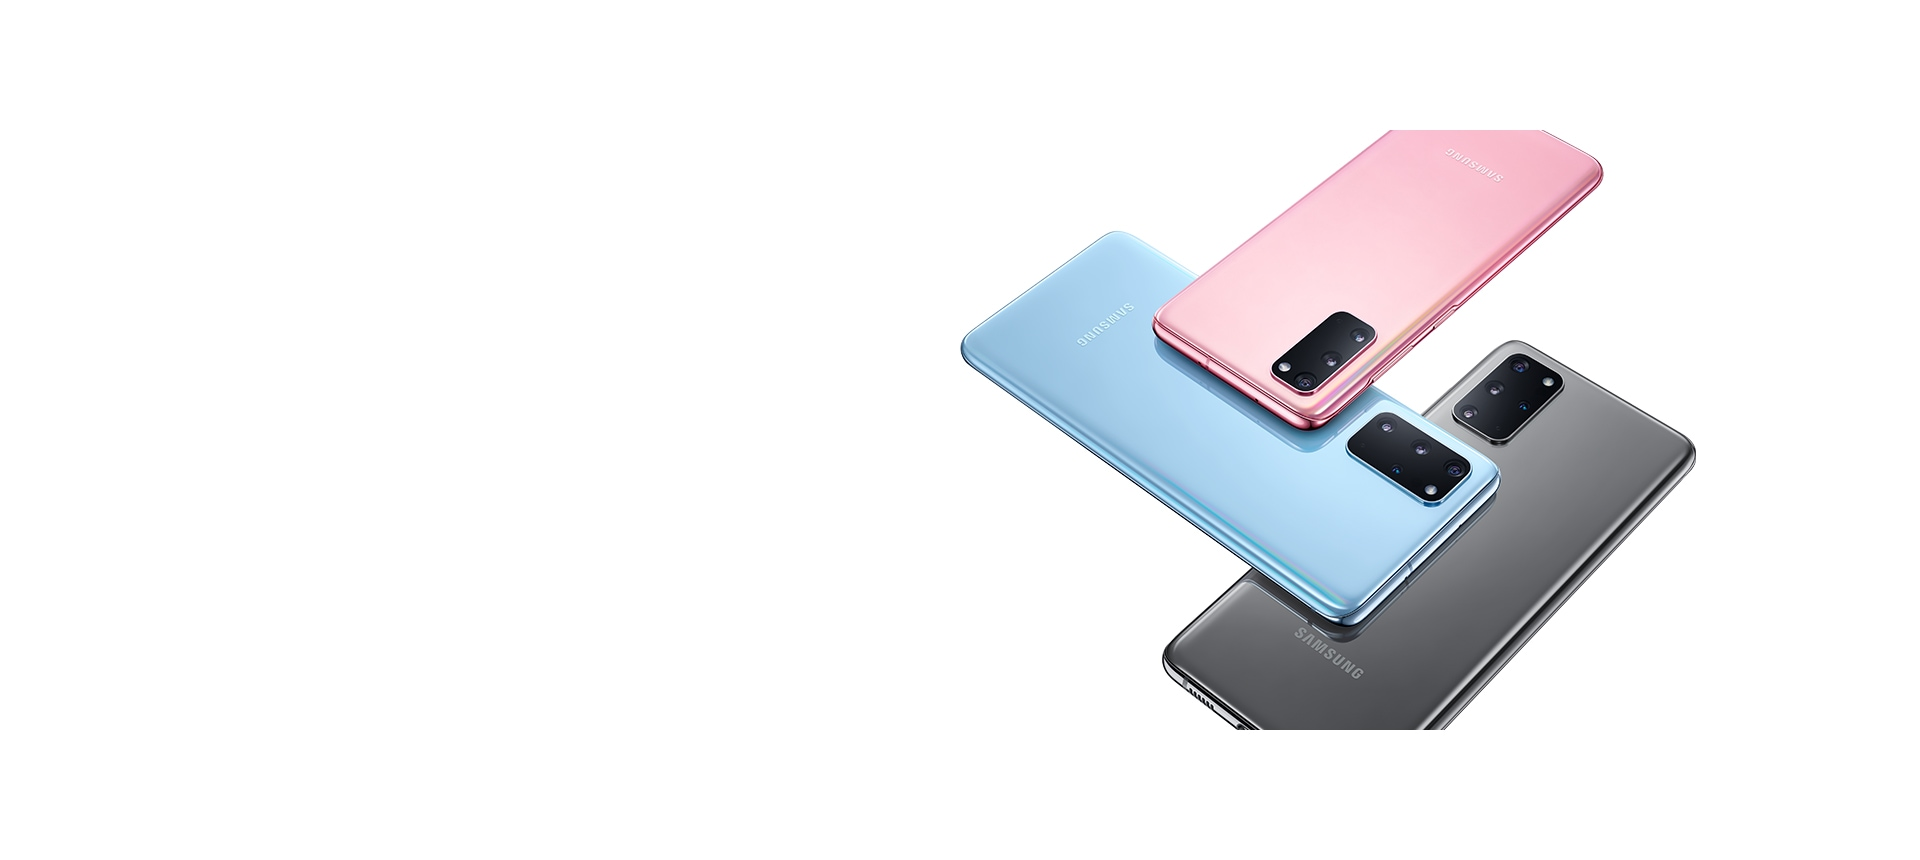 Three Galaxy S20 5G and S20 plus 5G phones, one in Cloud Pink, one in Cloud Blue, and one in Cosmic Gray, all seen from the rear and overlapping in a woven-style design